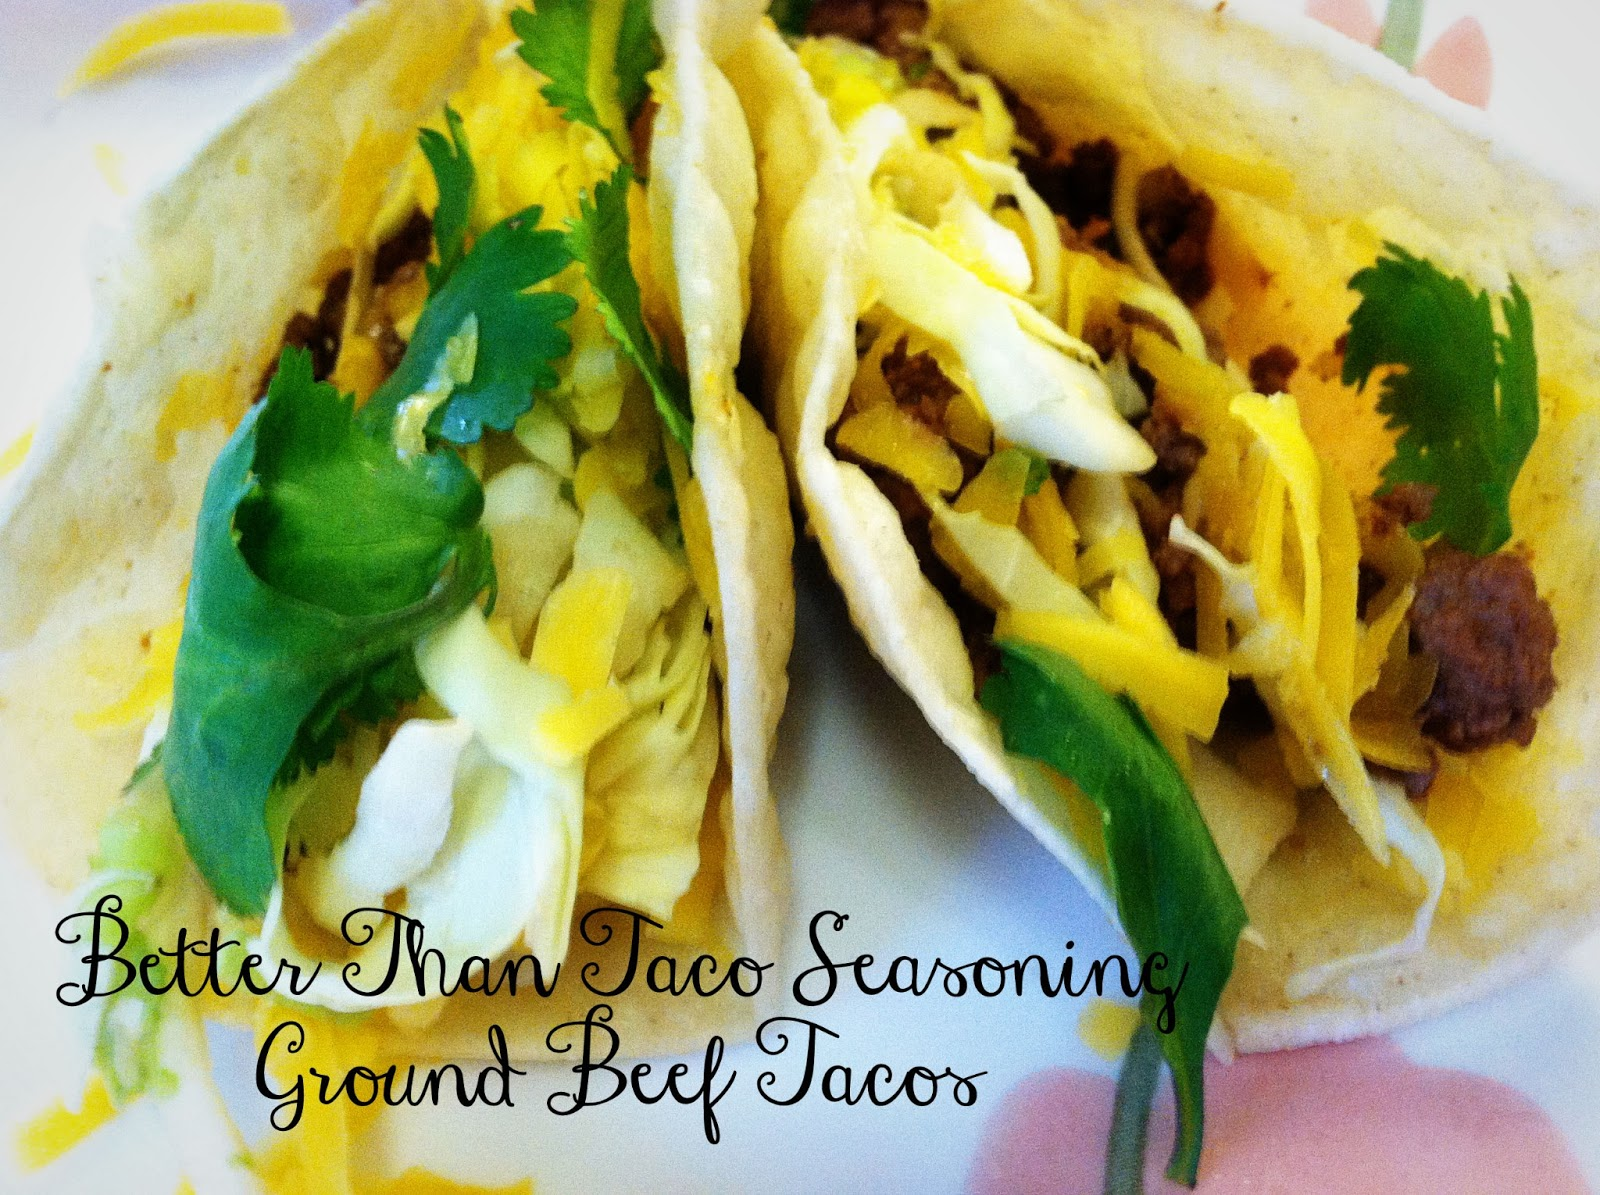 Better Than Taco Seasoning Ground Beef Tacos